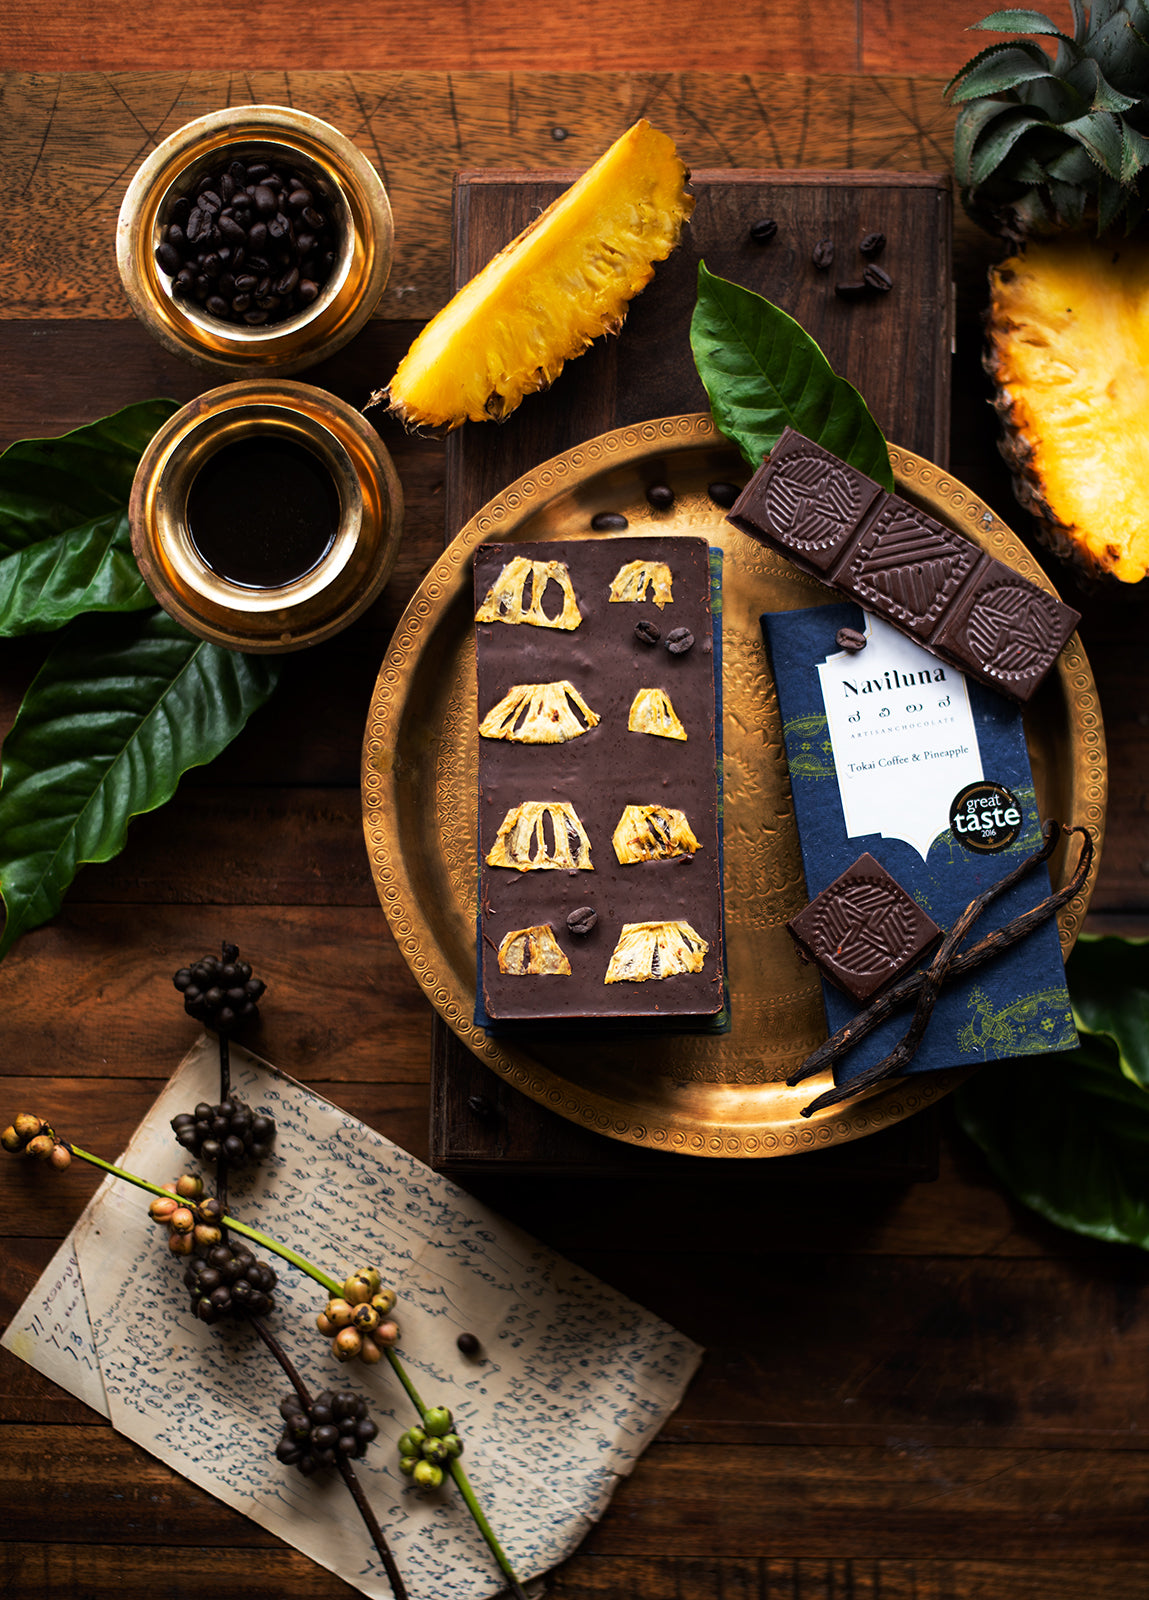 coffee from chikmanglur, pineapples from mysore, and chocolate from kerala, with natural vanilla.